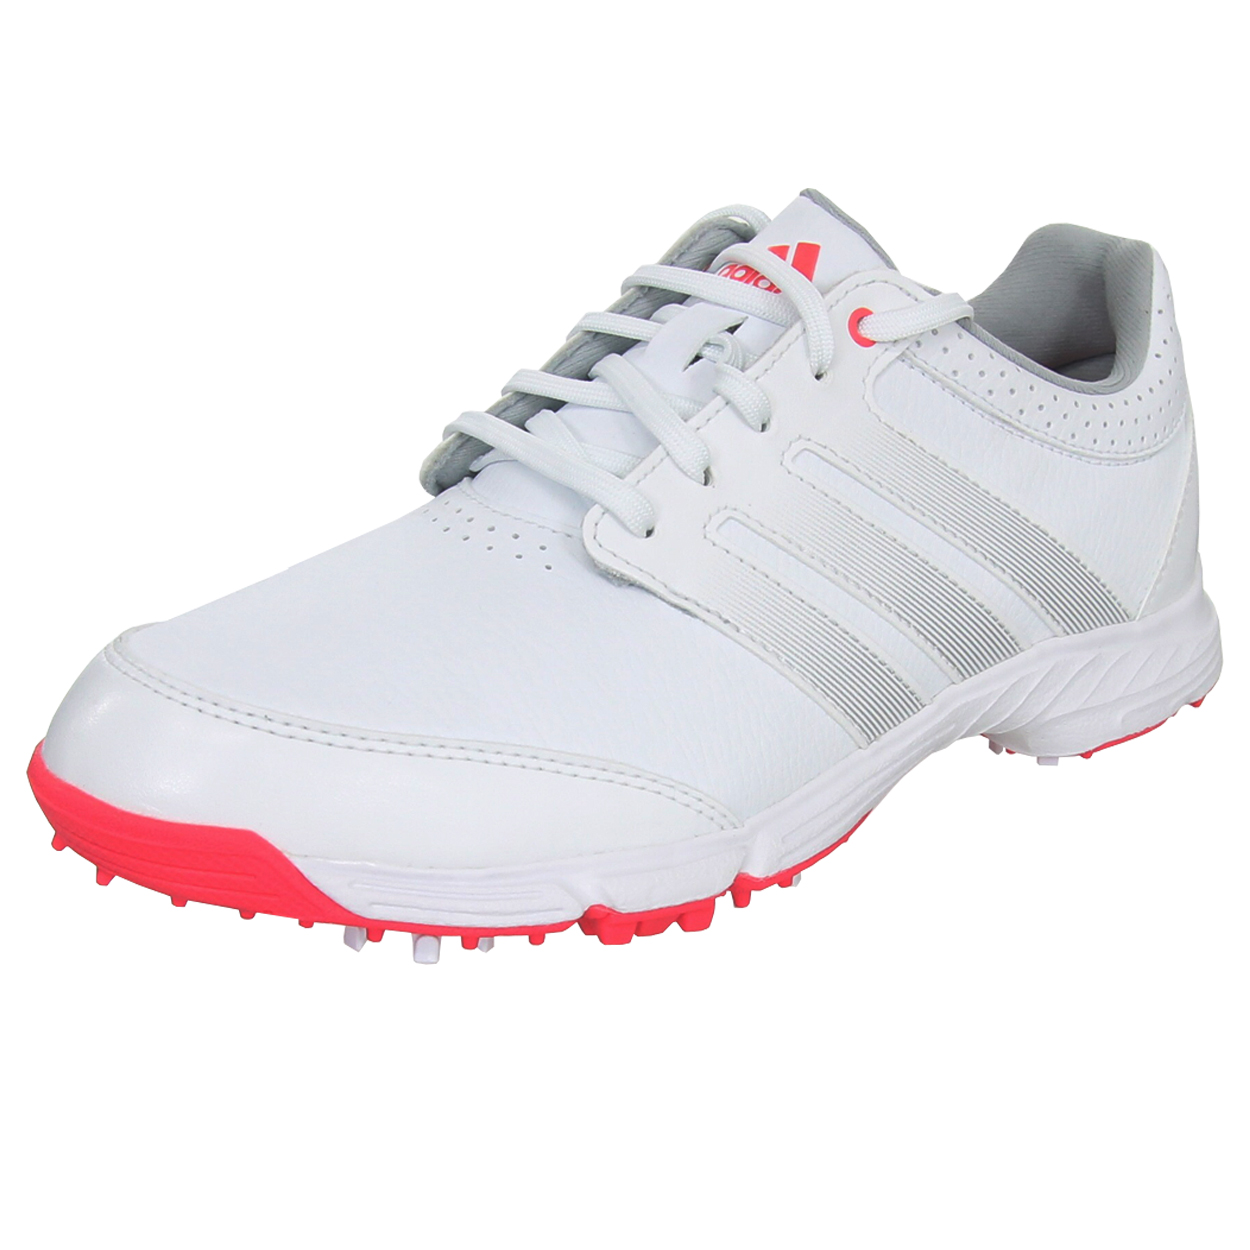 Fantastic  Clothing Shoes Amp Accs Gt Women39s Golf Clothing Amp Shoes Gt